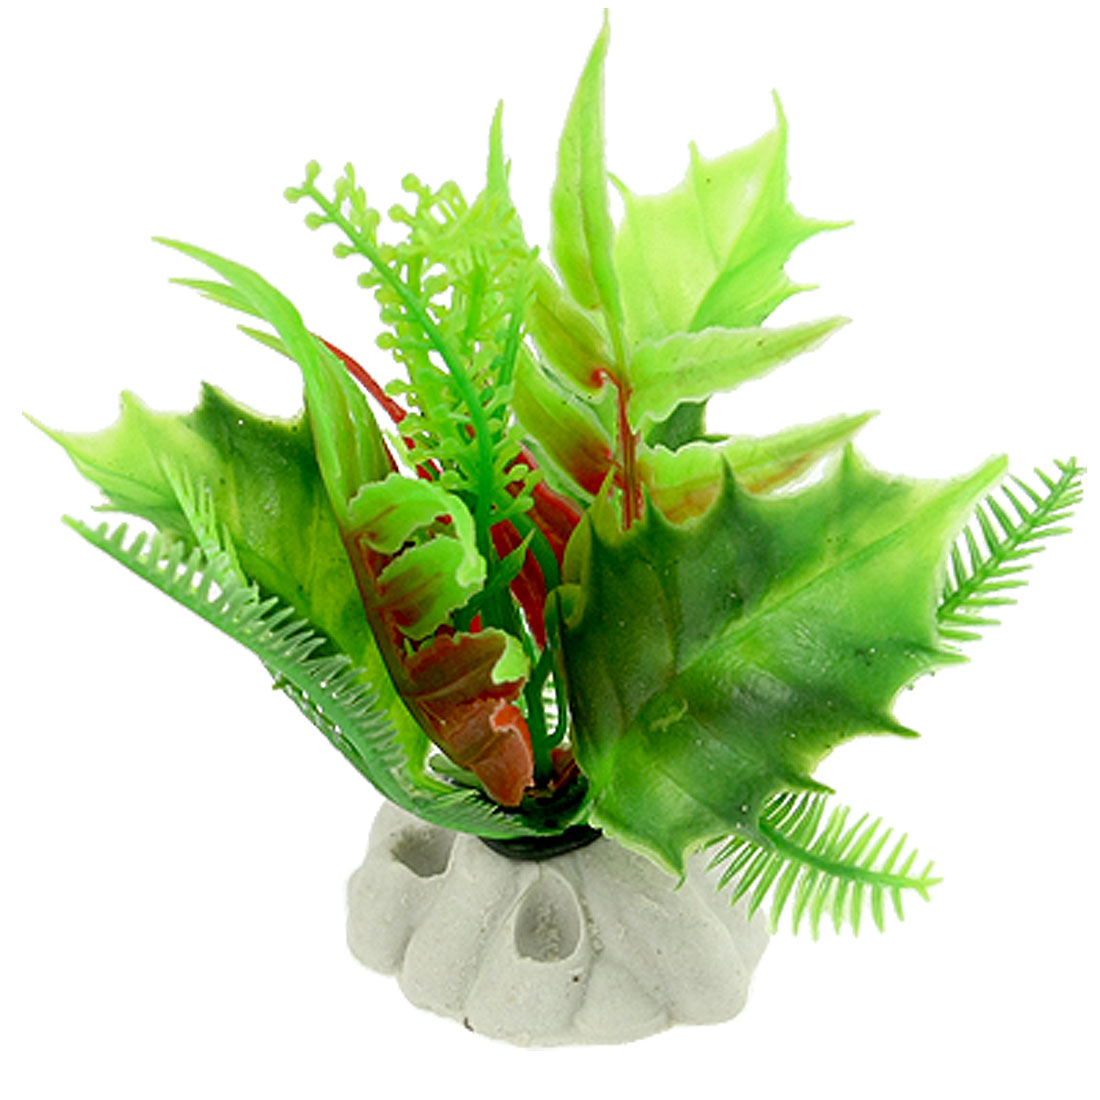 3 Pcs Aquarium Plastic Plant Aquascaping Decor w Ceramic Base